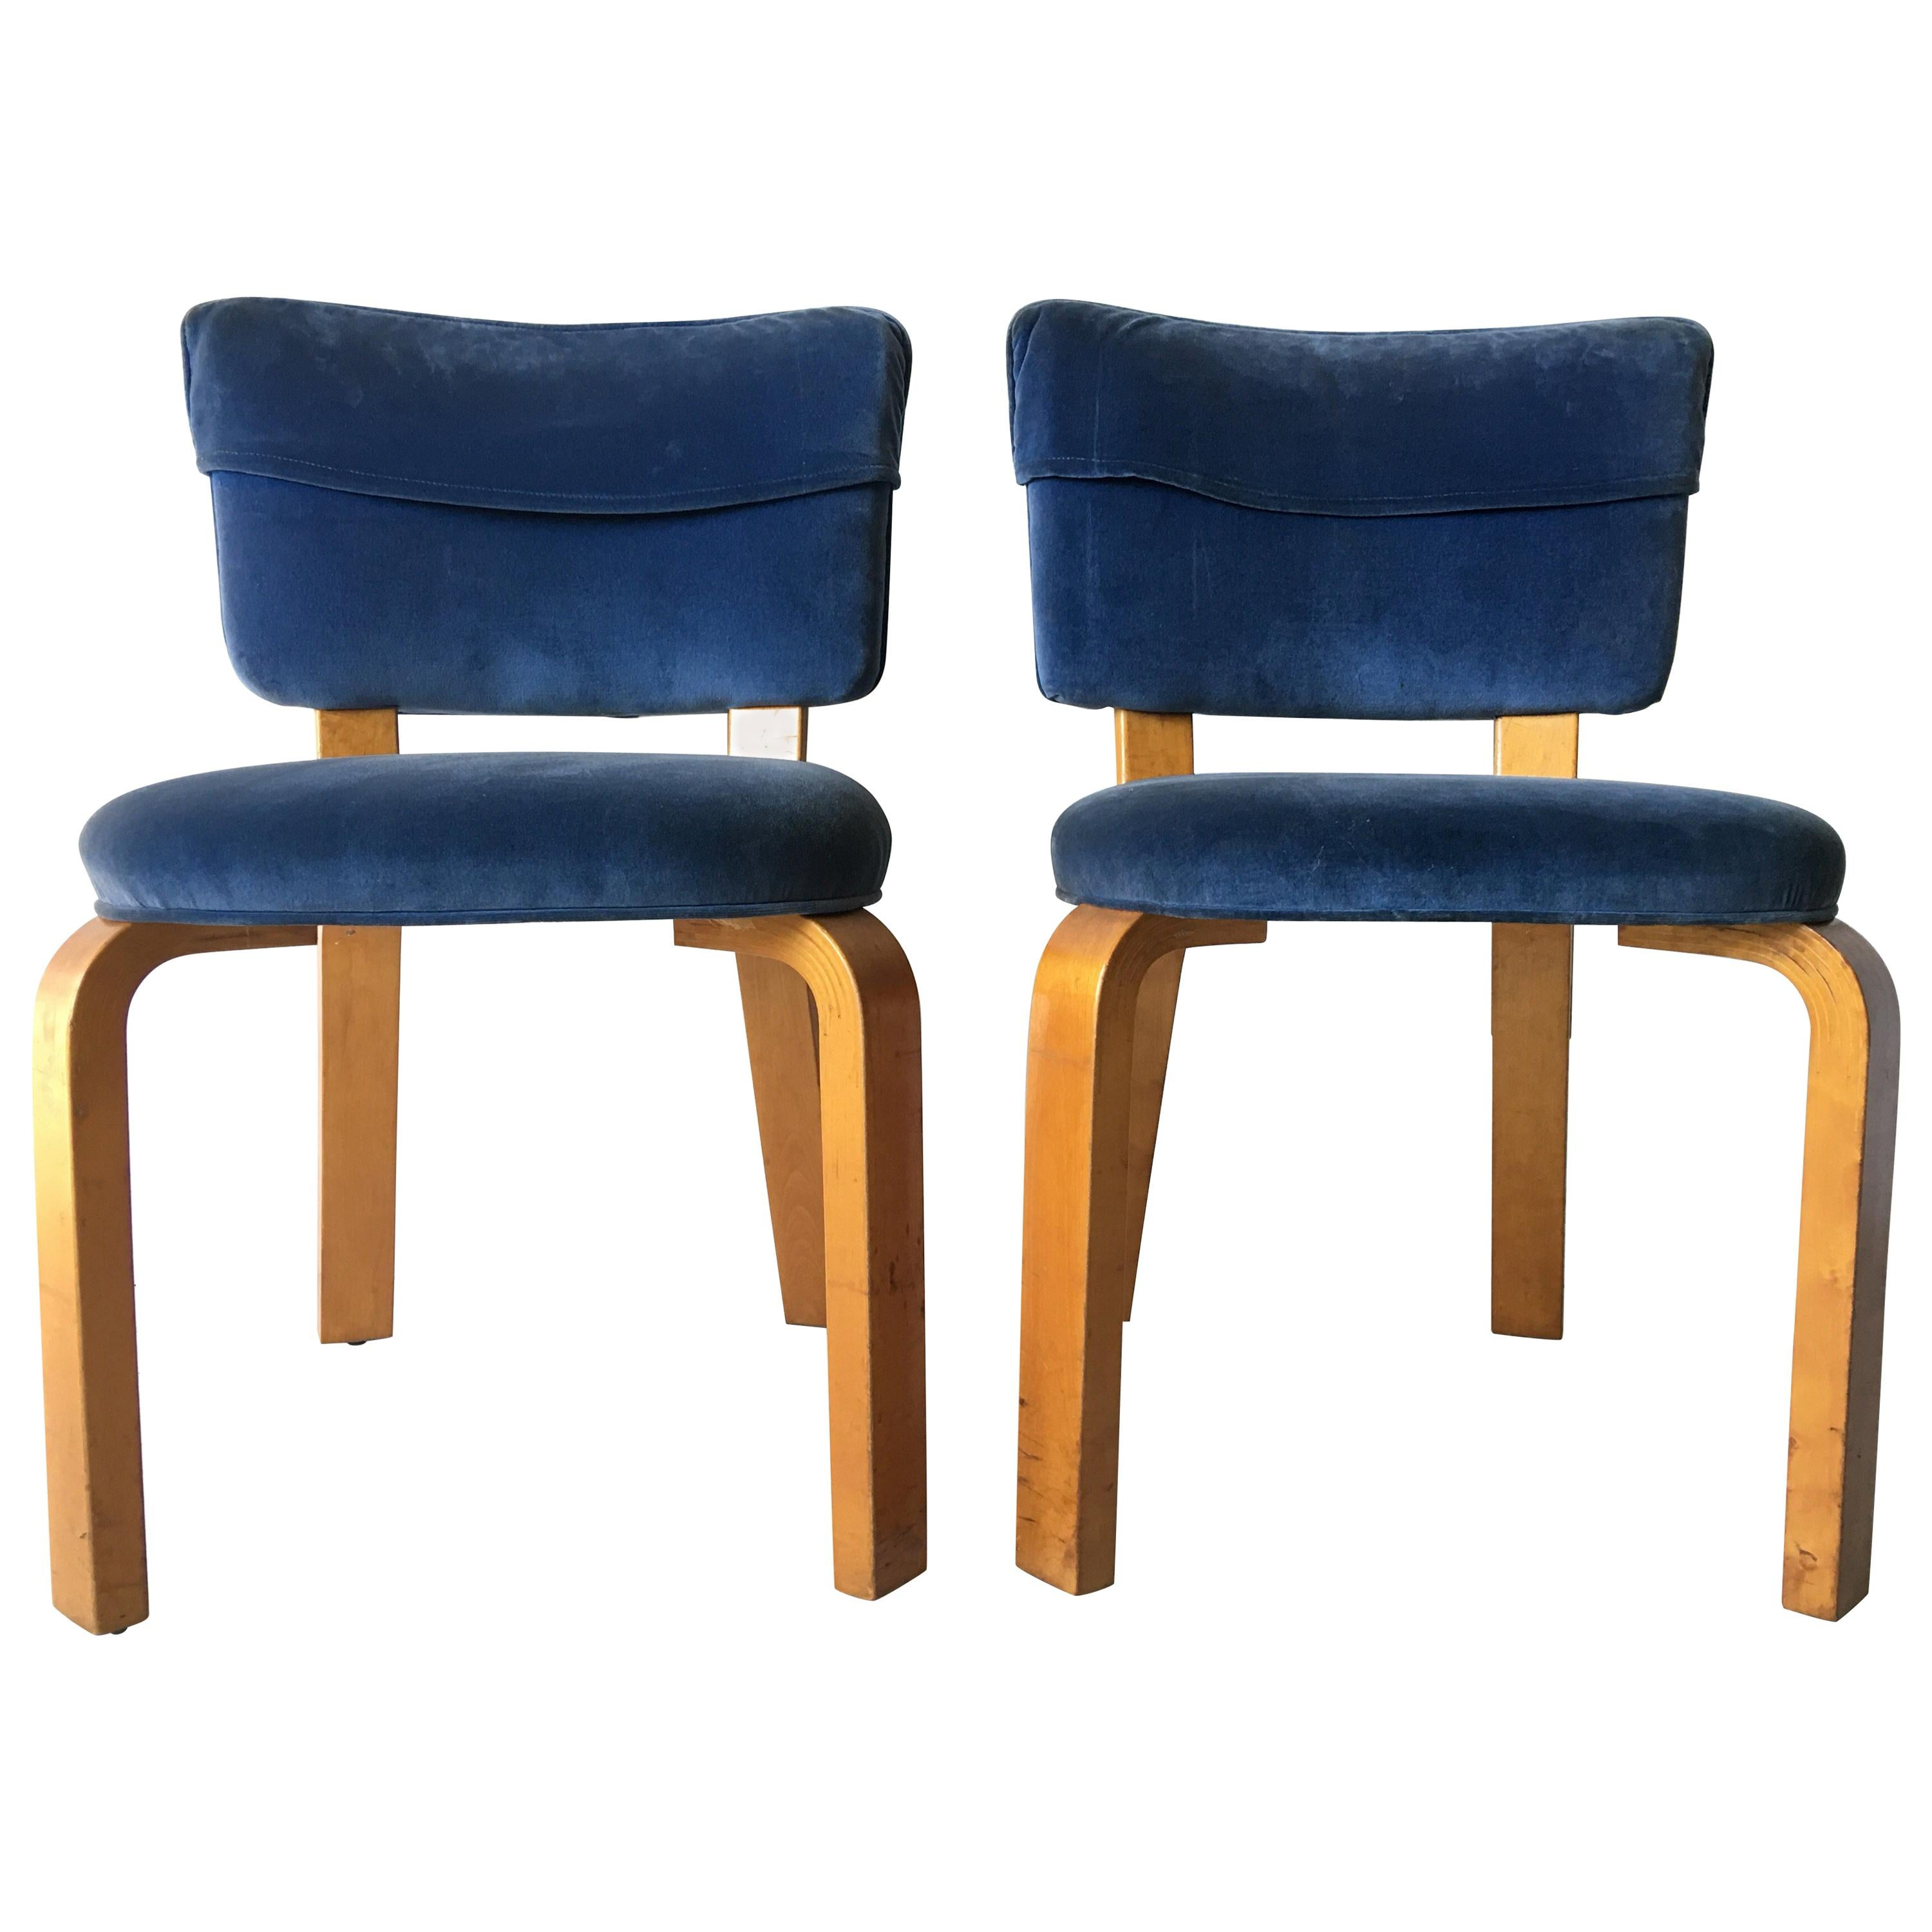 chair design model swing pod pair of early alvar aalto 62 chairs for sale at 1stdibs